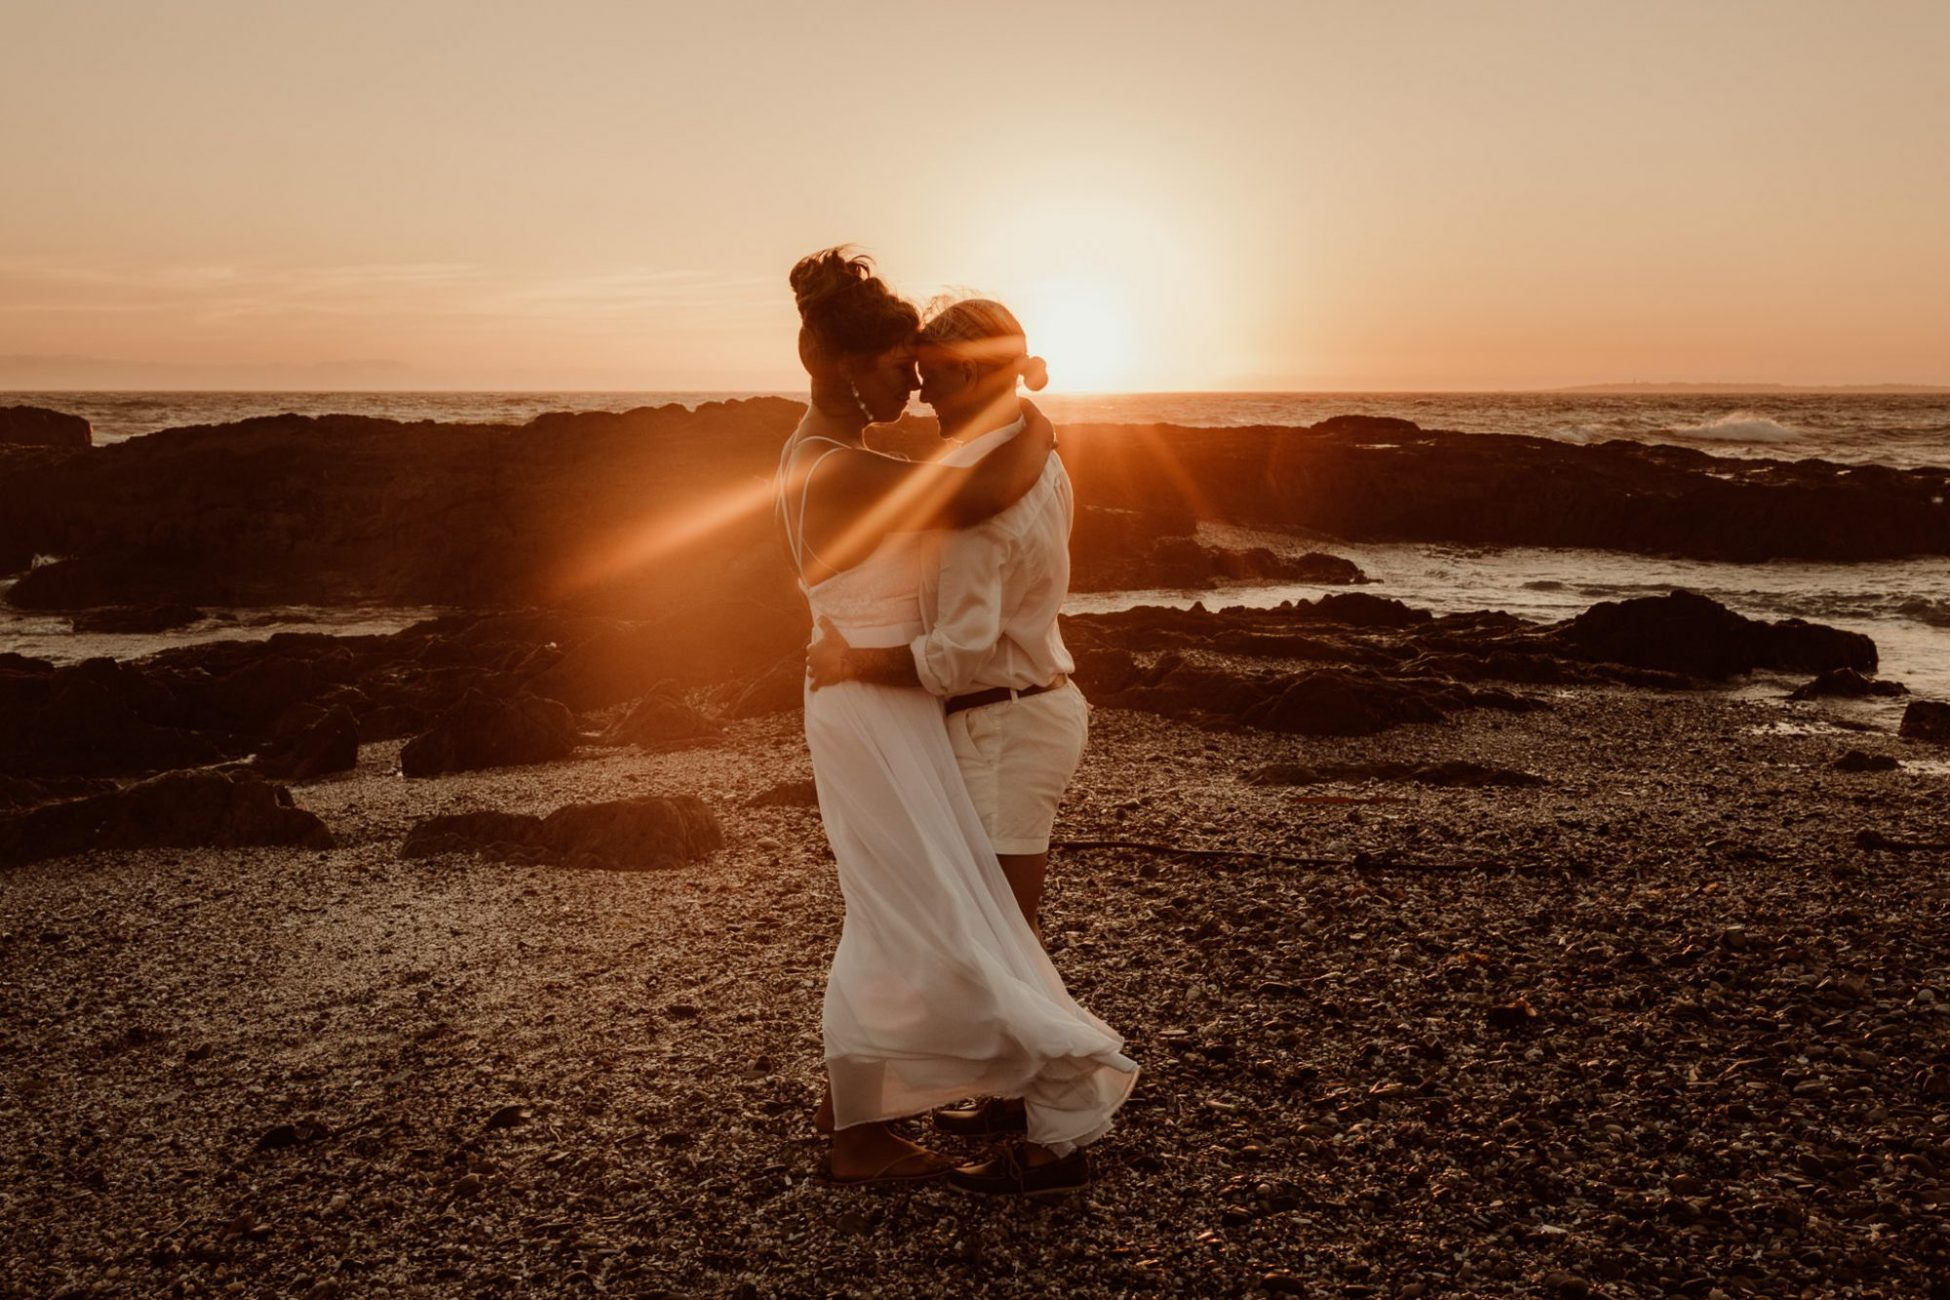 sunset sunrays coming through a couple of brides hugging